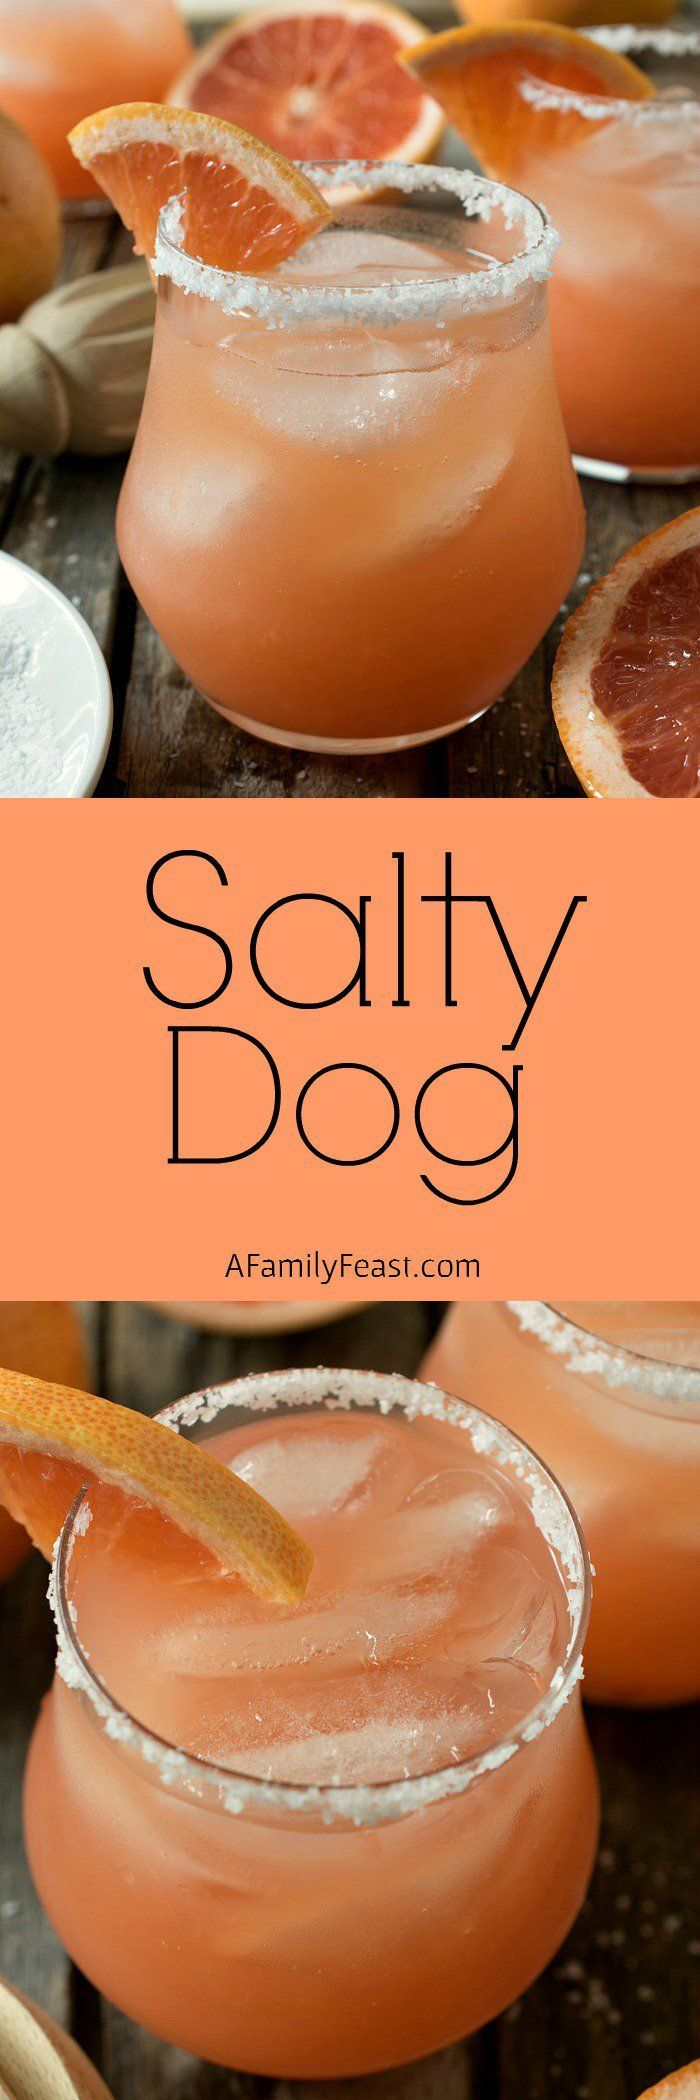 Salty Dog - A delicious cocktail made with grapefruit juice, vodka or gin, and served is a salted-rimmed glass. #summercocktails